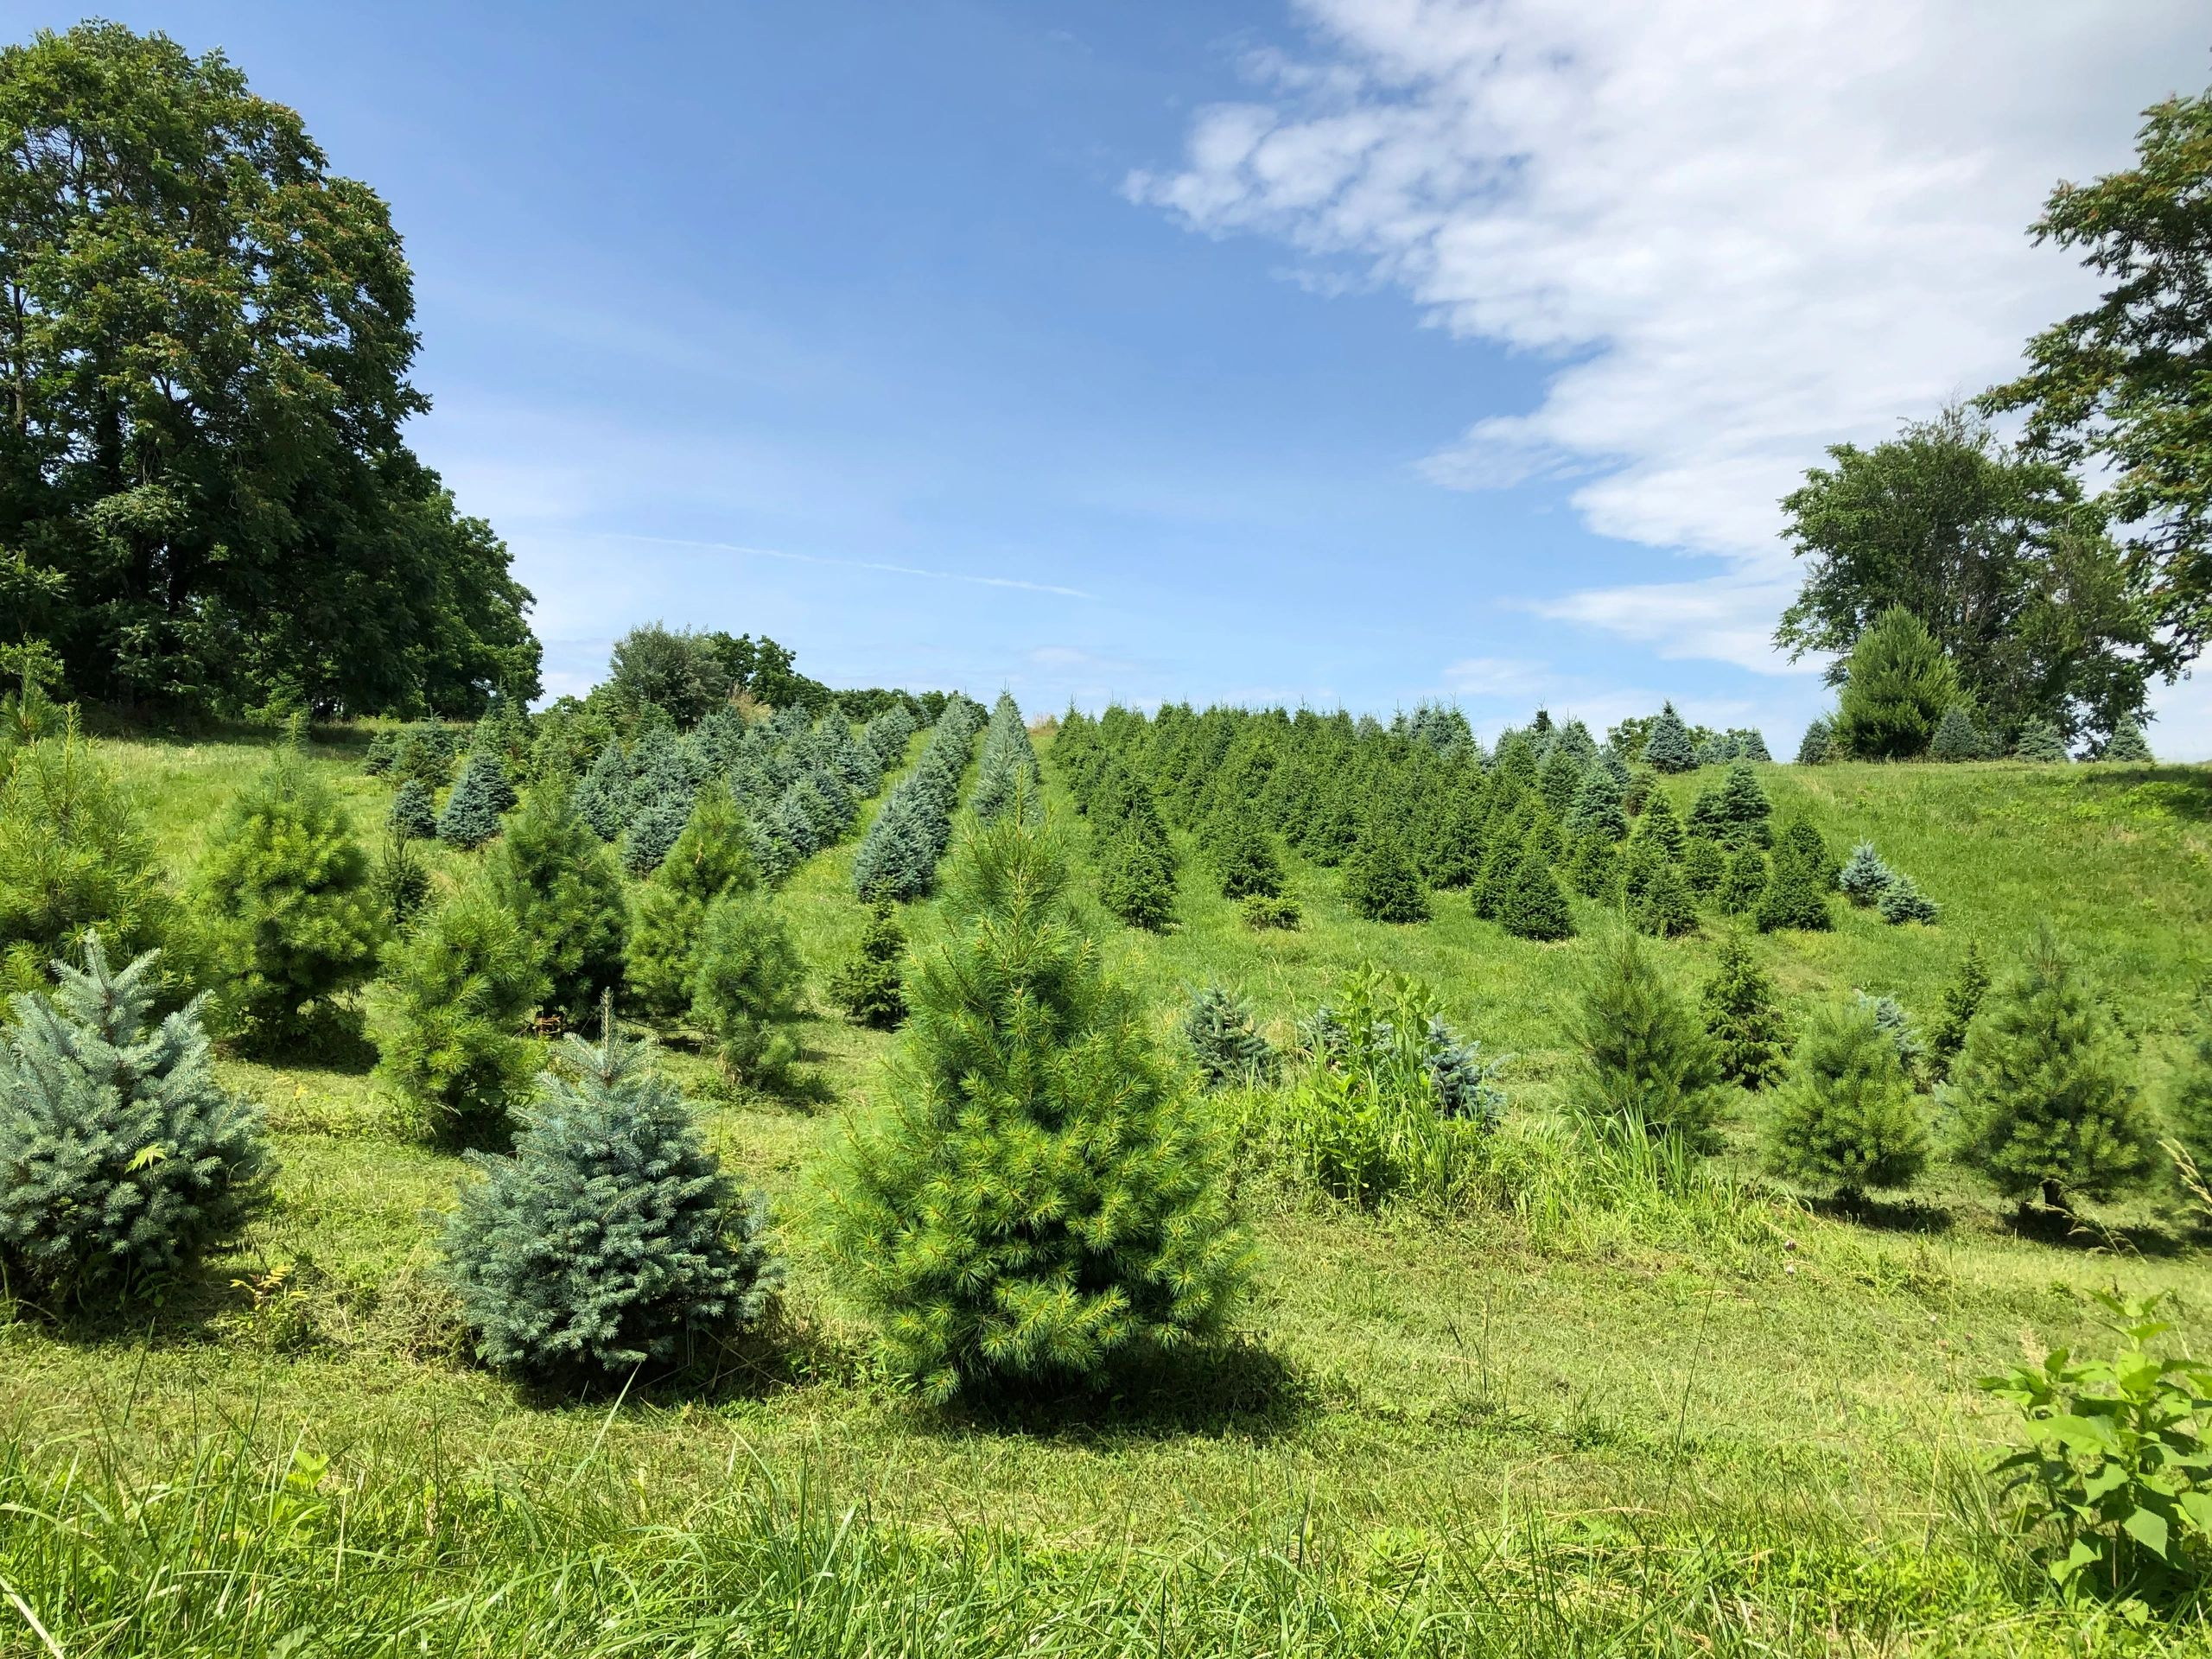 Hartland Farm And Orchard Pick Your Own Markham Virginia Hartland Farm And Orchard